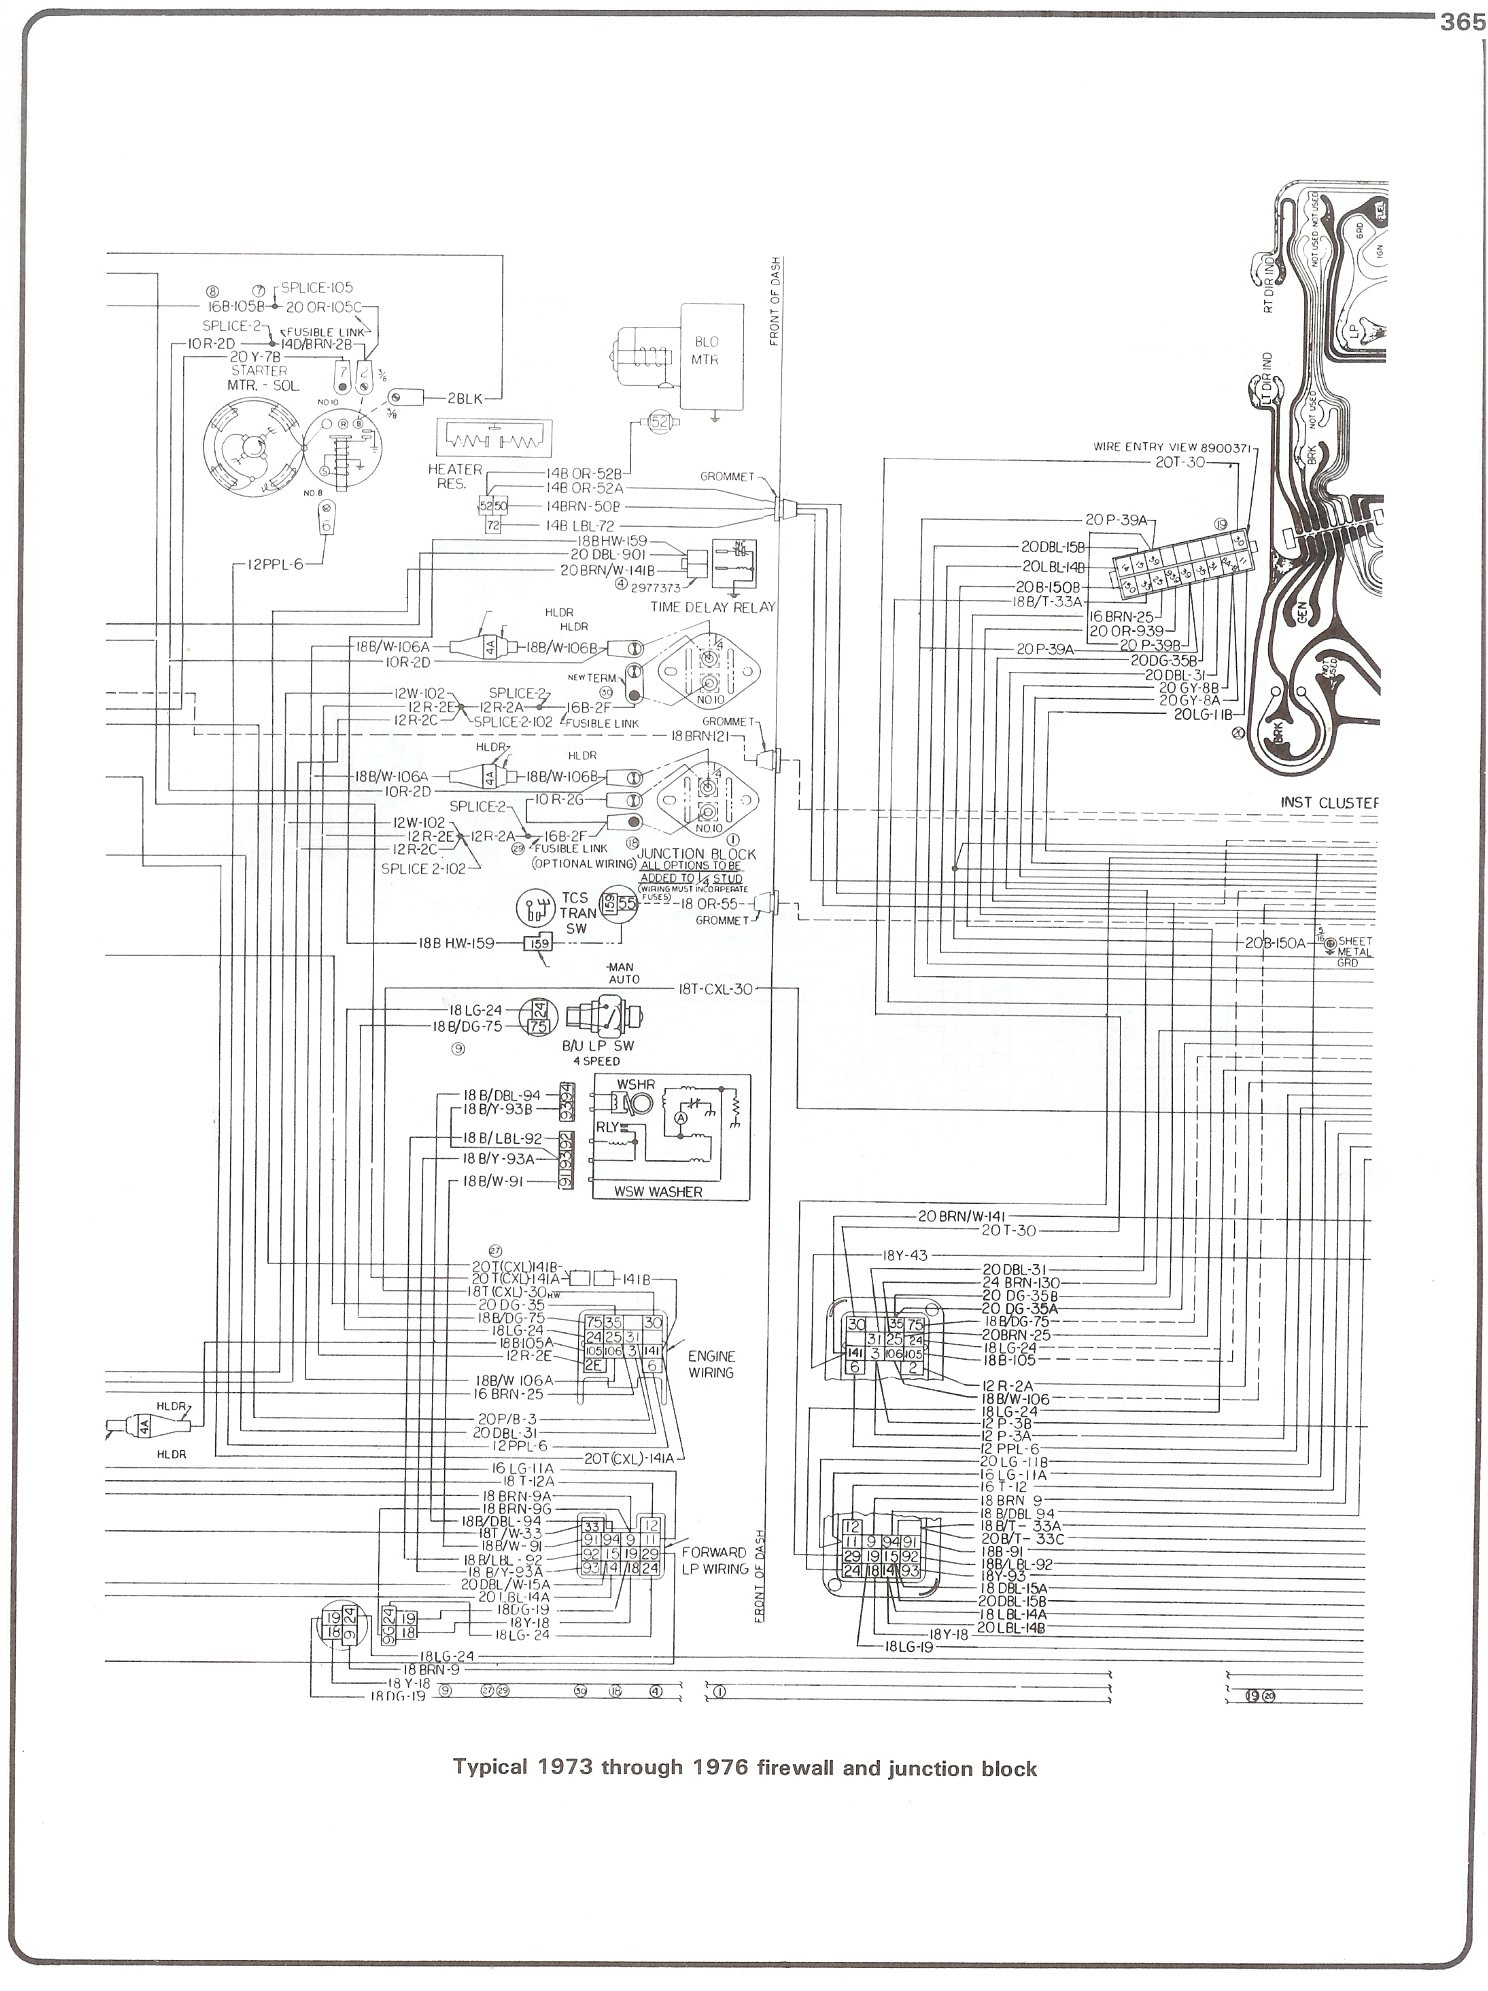 73 76_firewall_junct complete 73 87 wiring diagrams 1978 chevy truck fuse box diagram at soozxer.org